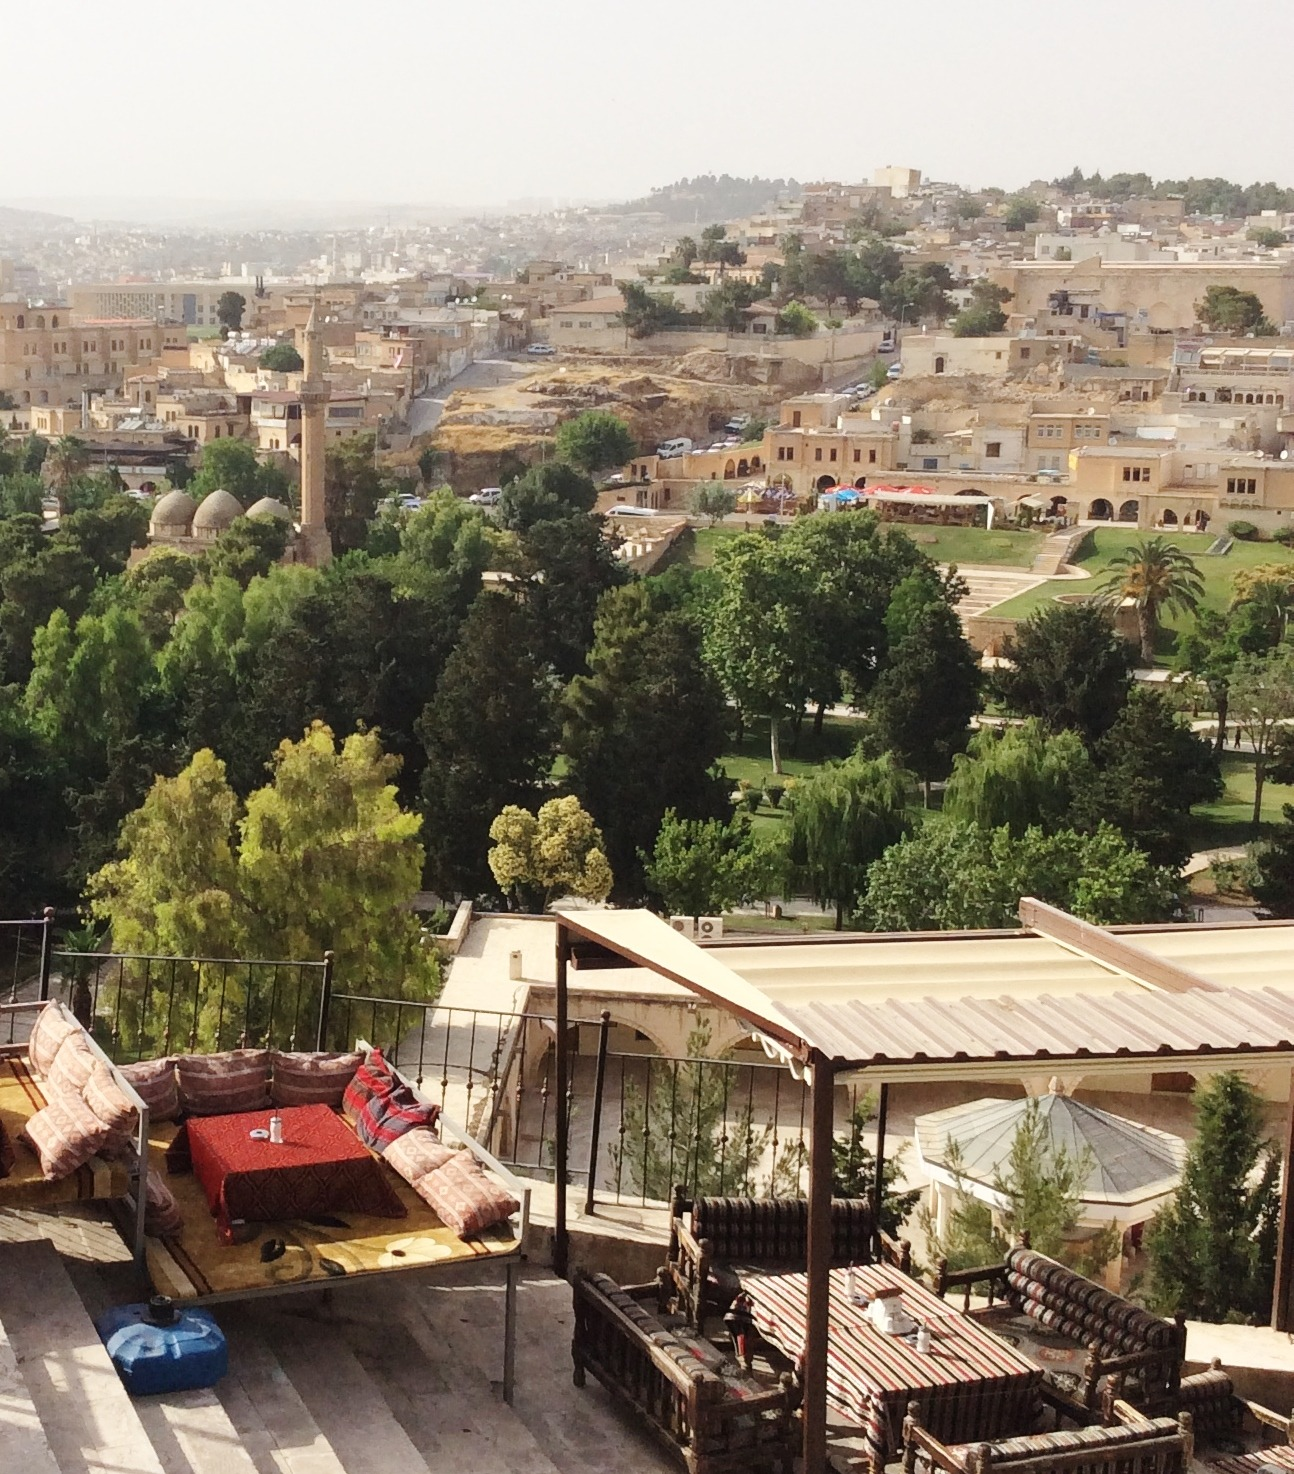 The city of Urfa, northeast of Kobane on the Turkish side of the border.